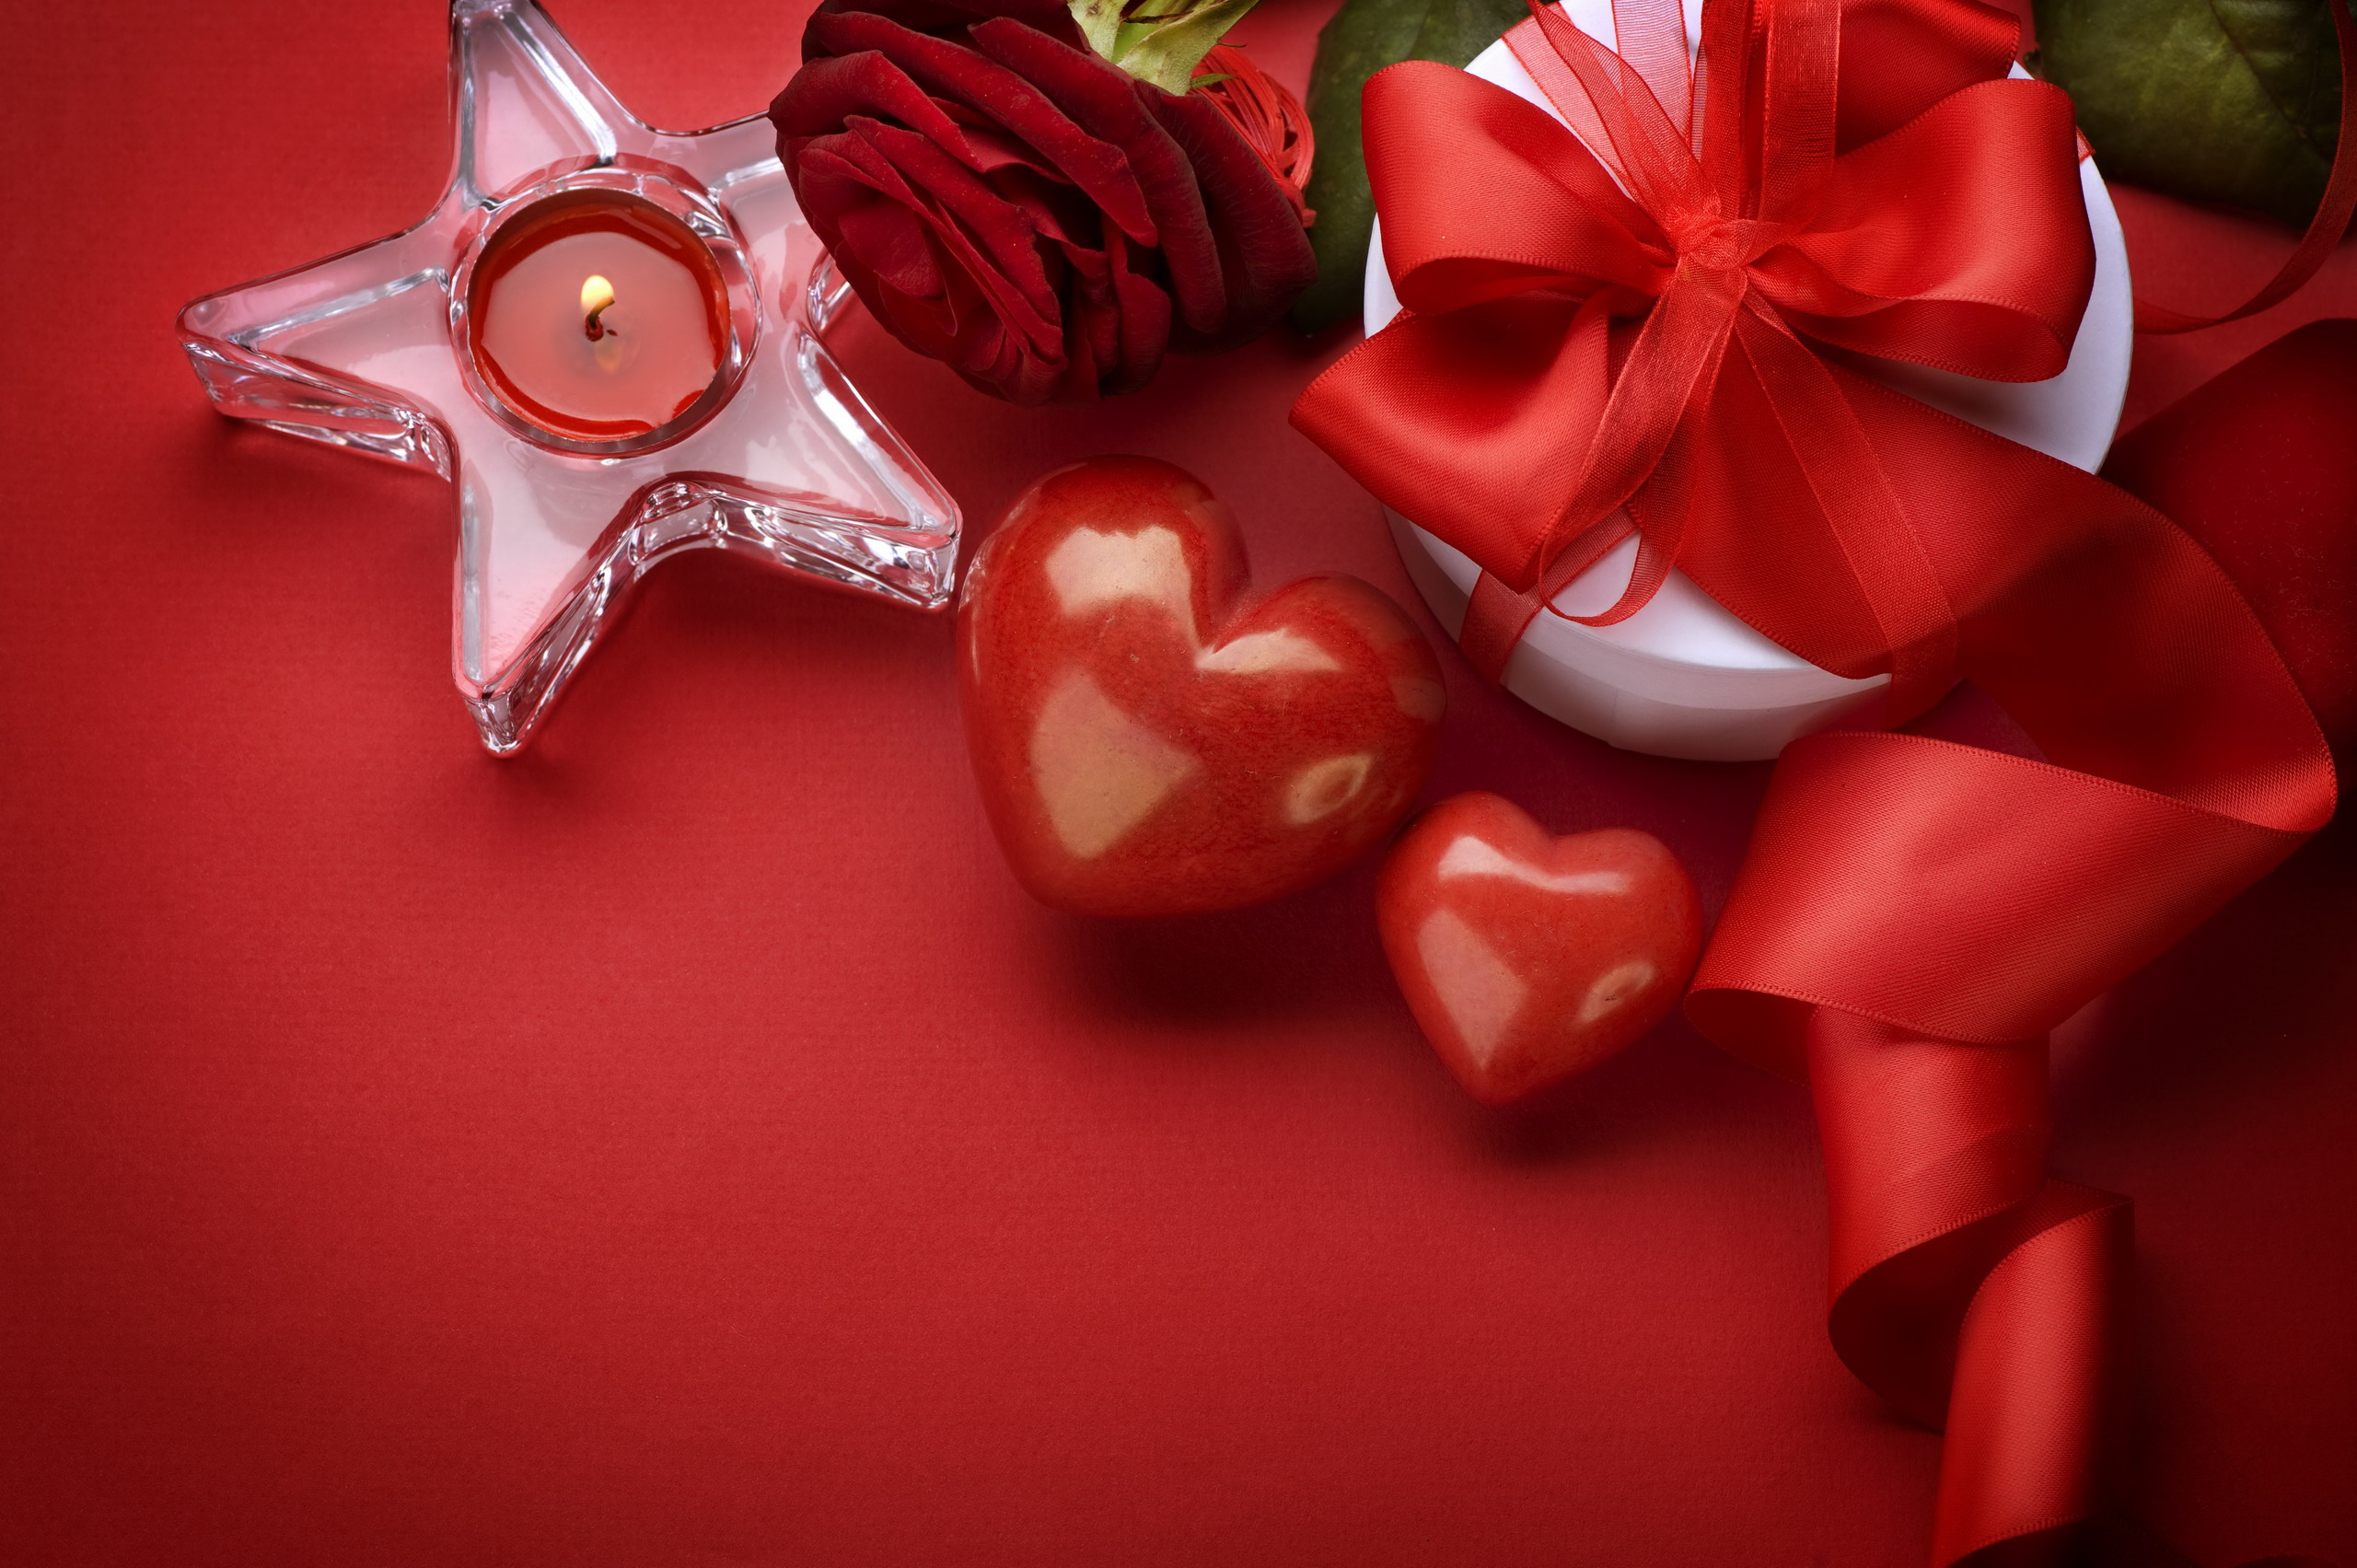 Valentines-Day-February-14-Hearts-Rose-Candle-Gifts-HD-Wallpaper